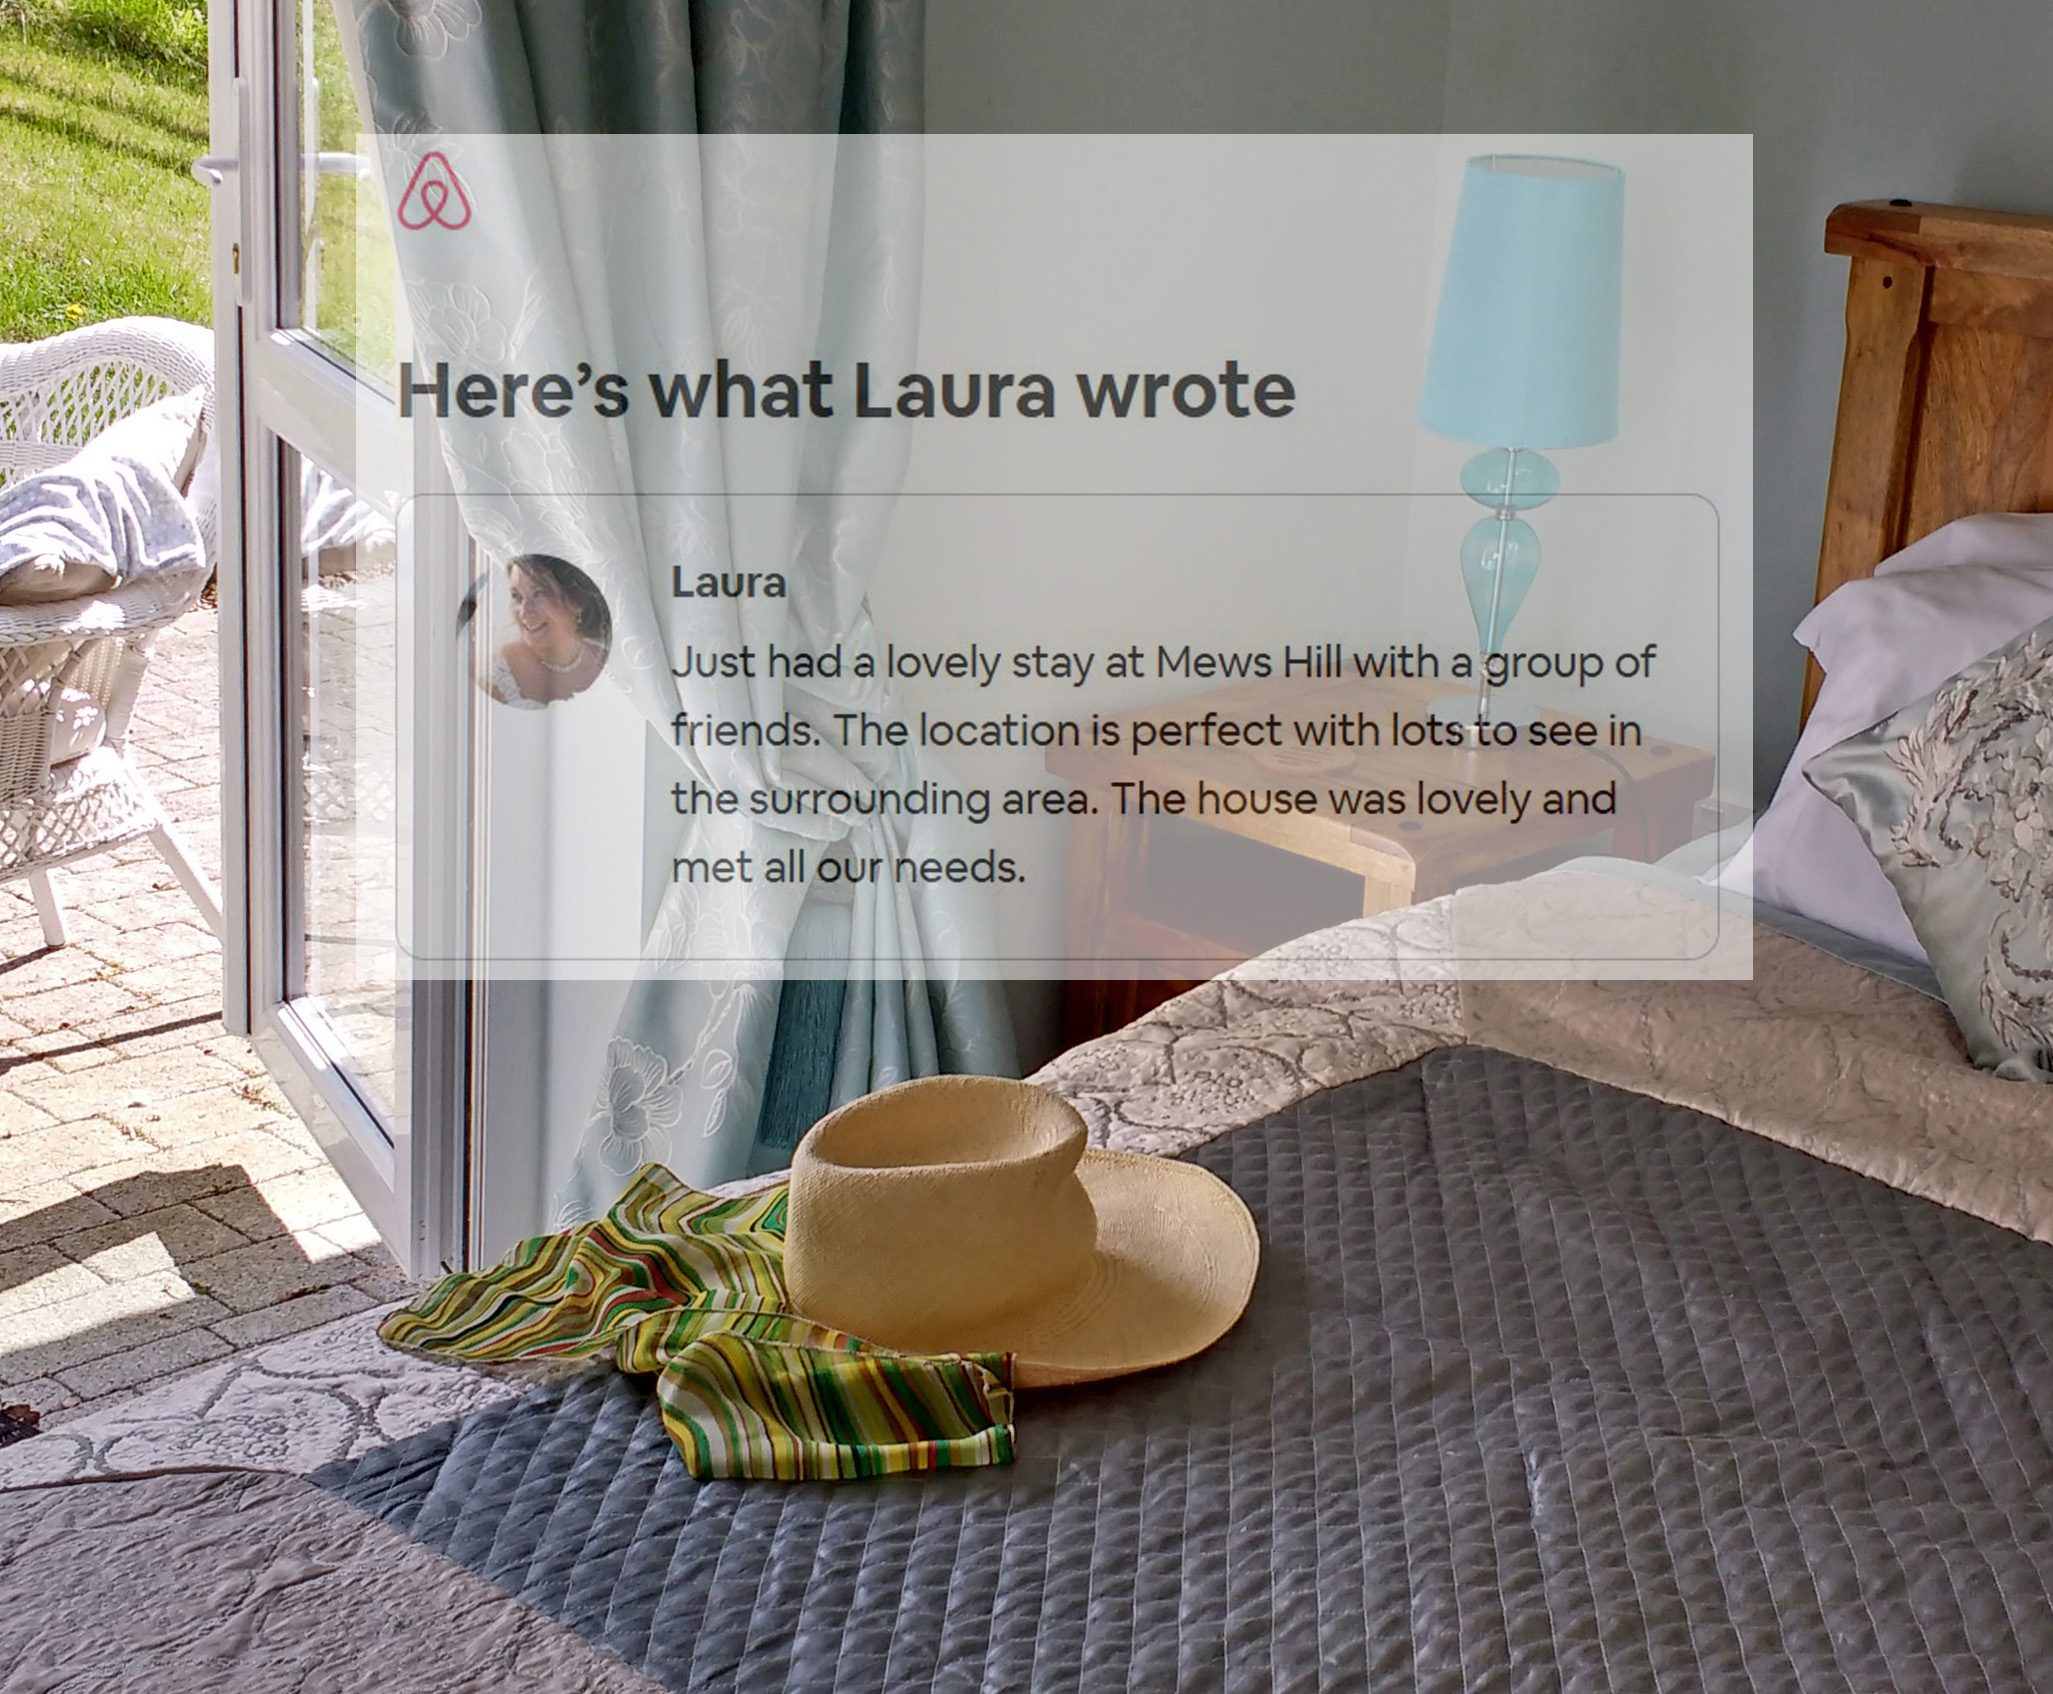 Mews Hill 5-star airbnb review